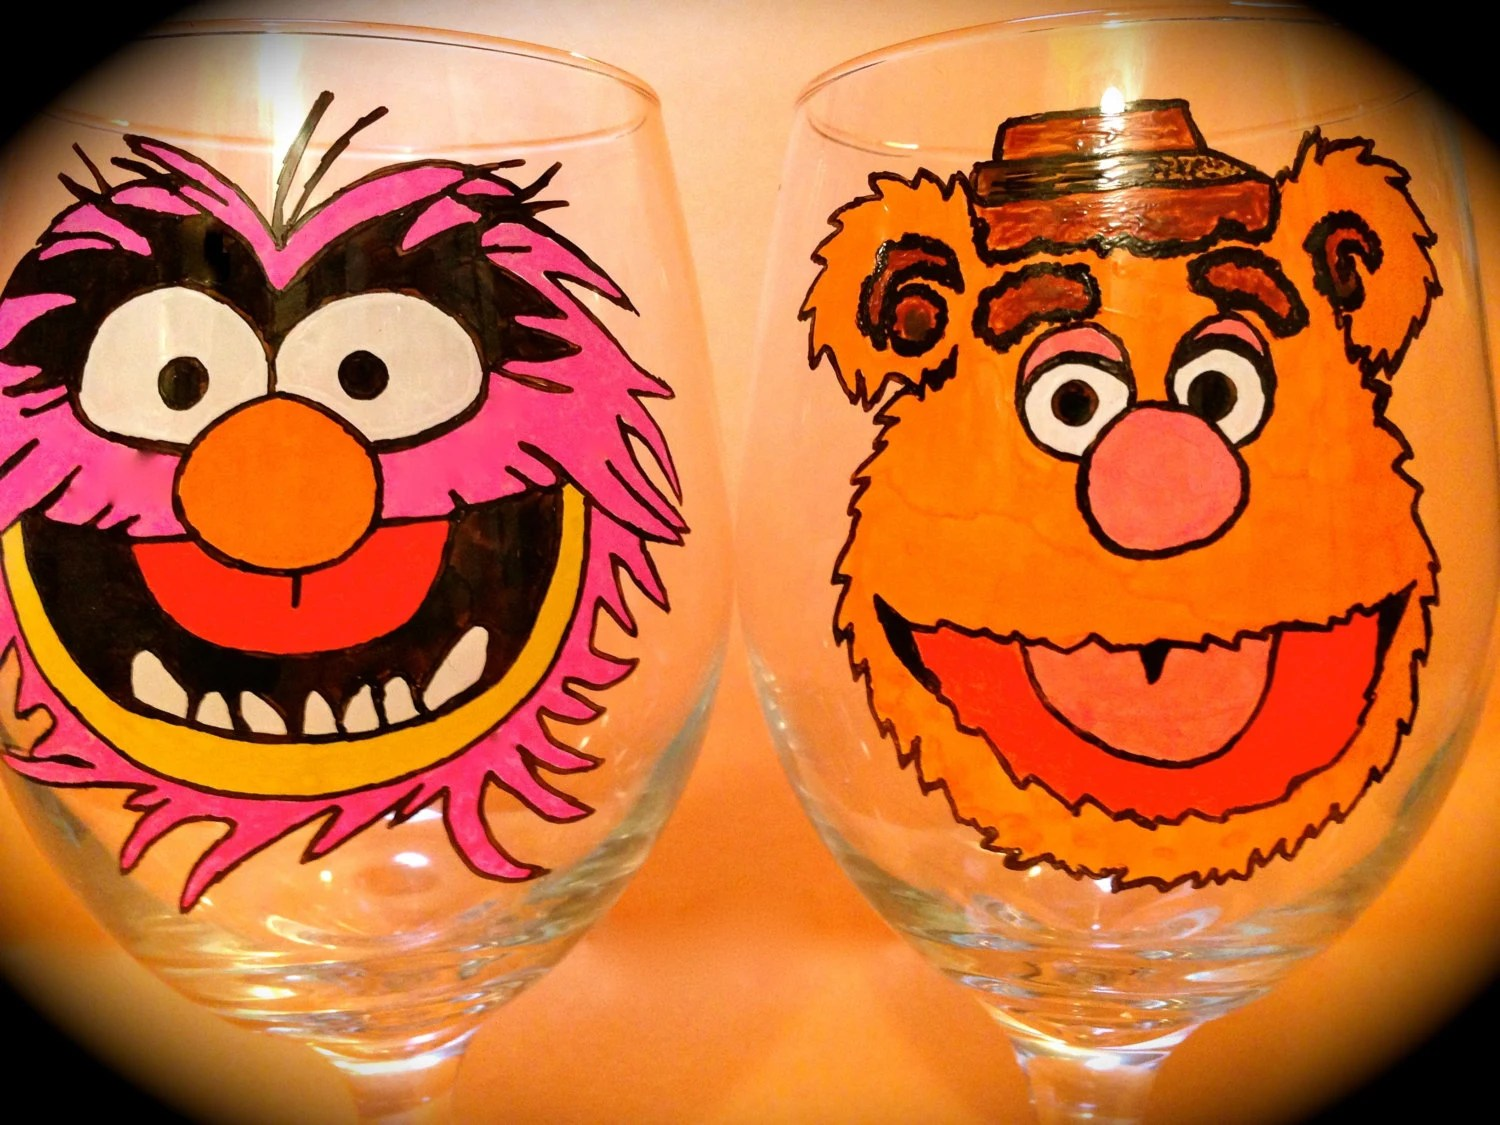 Muppets Animal and Fozzie Bear Wine Glasses - hand painted - set of 2